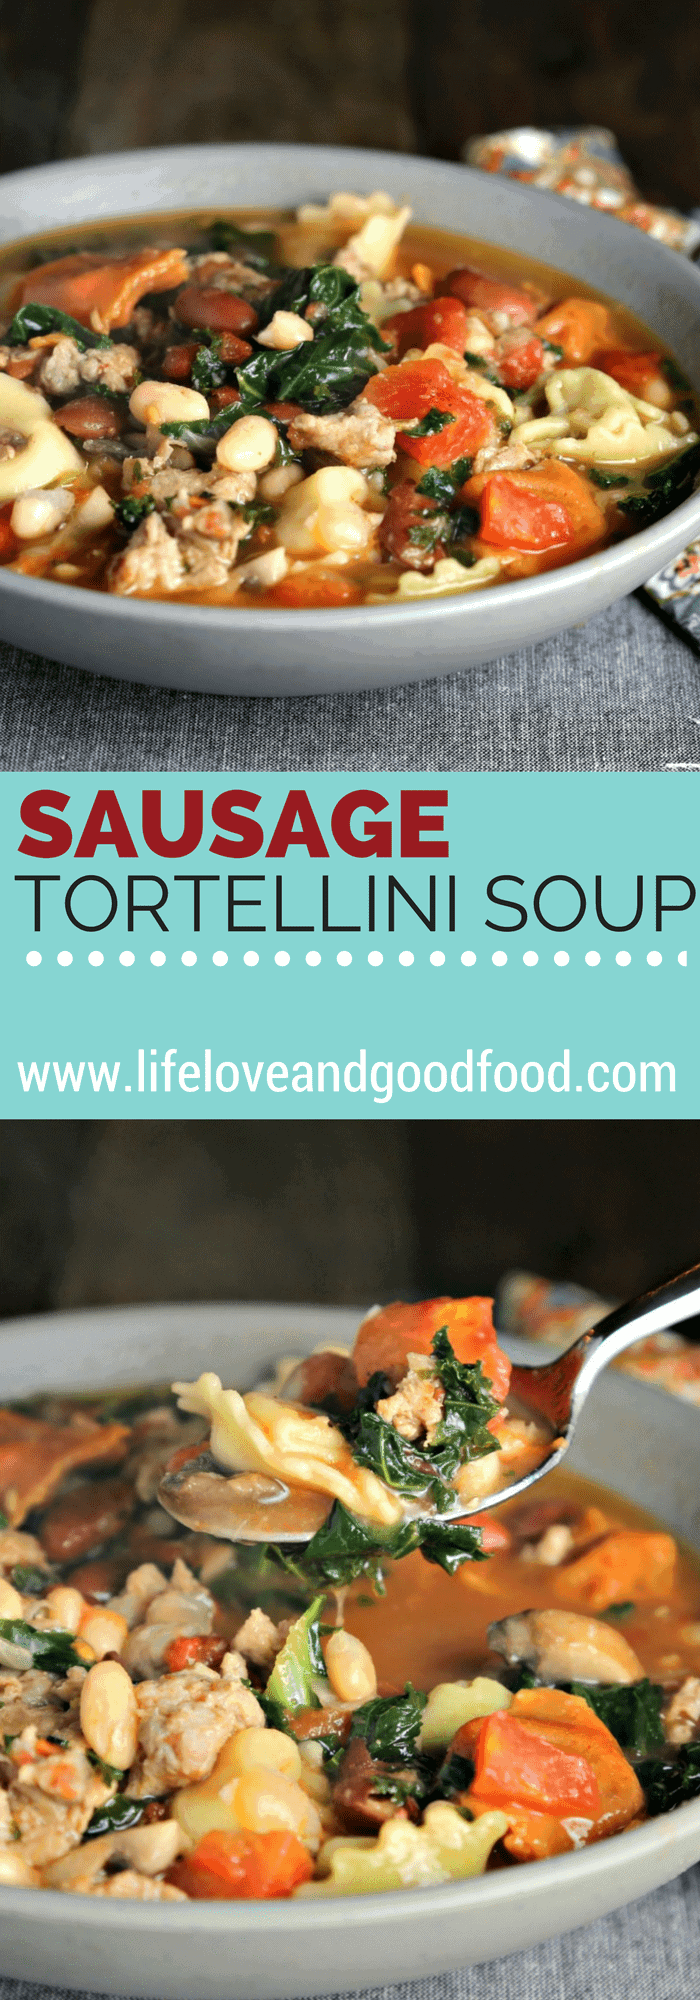 Rustic Sausage Tortellini Soup—with either spicy or mild Italian sausage—is a warm and filling vegetable soup for a chilly day.